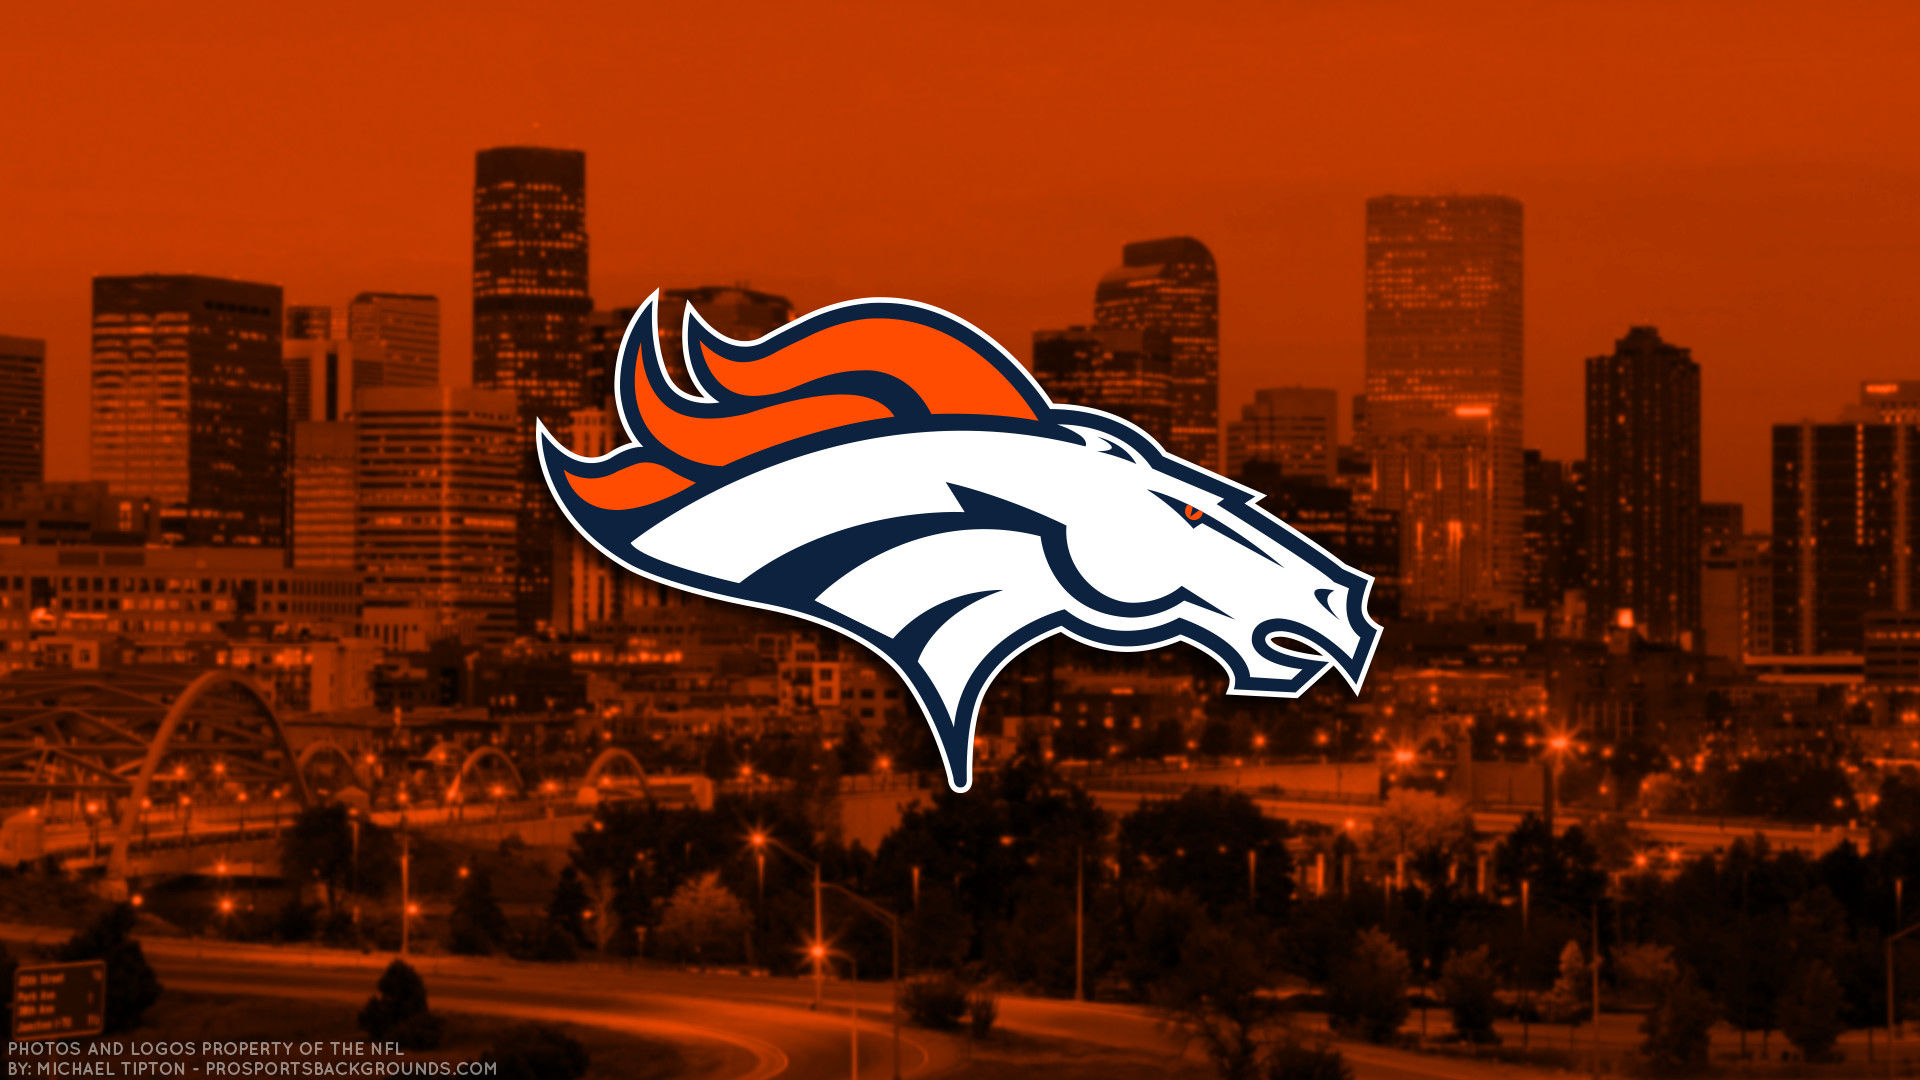 … Denver Broncos 2017 football logo wallpaper pc desktop computer